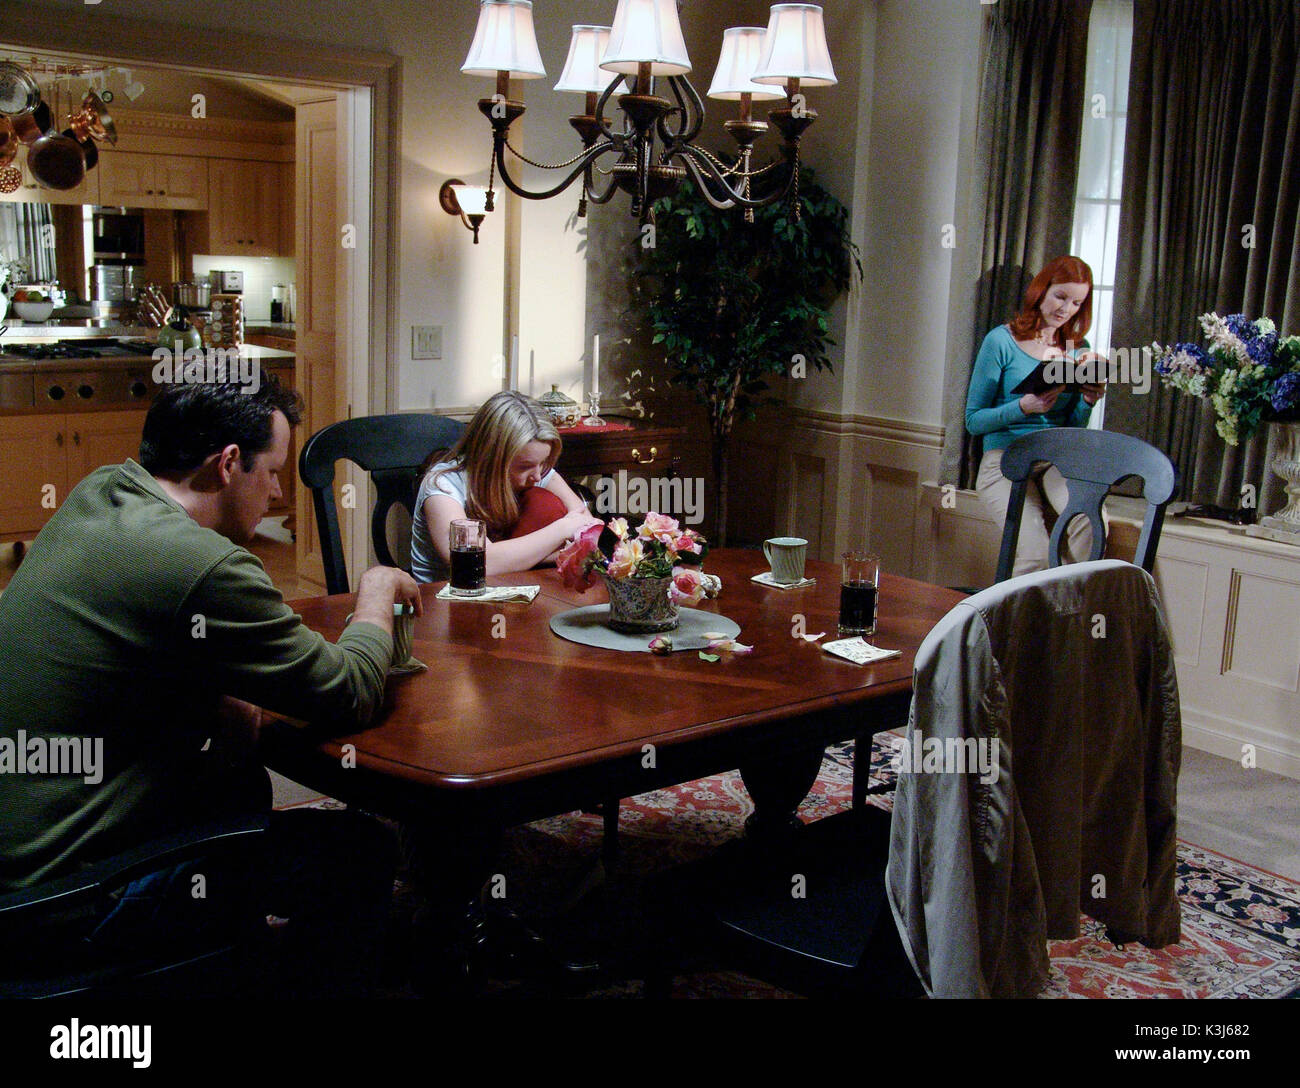 Desperate Housewives Series 1 Episode 8 Guilty Steven Stock Photo